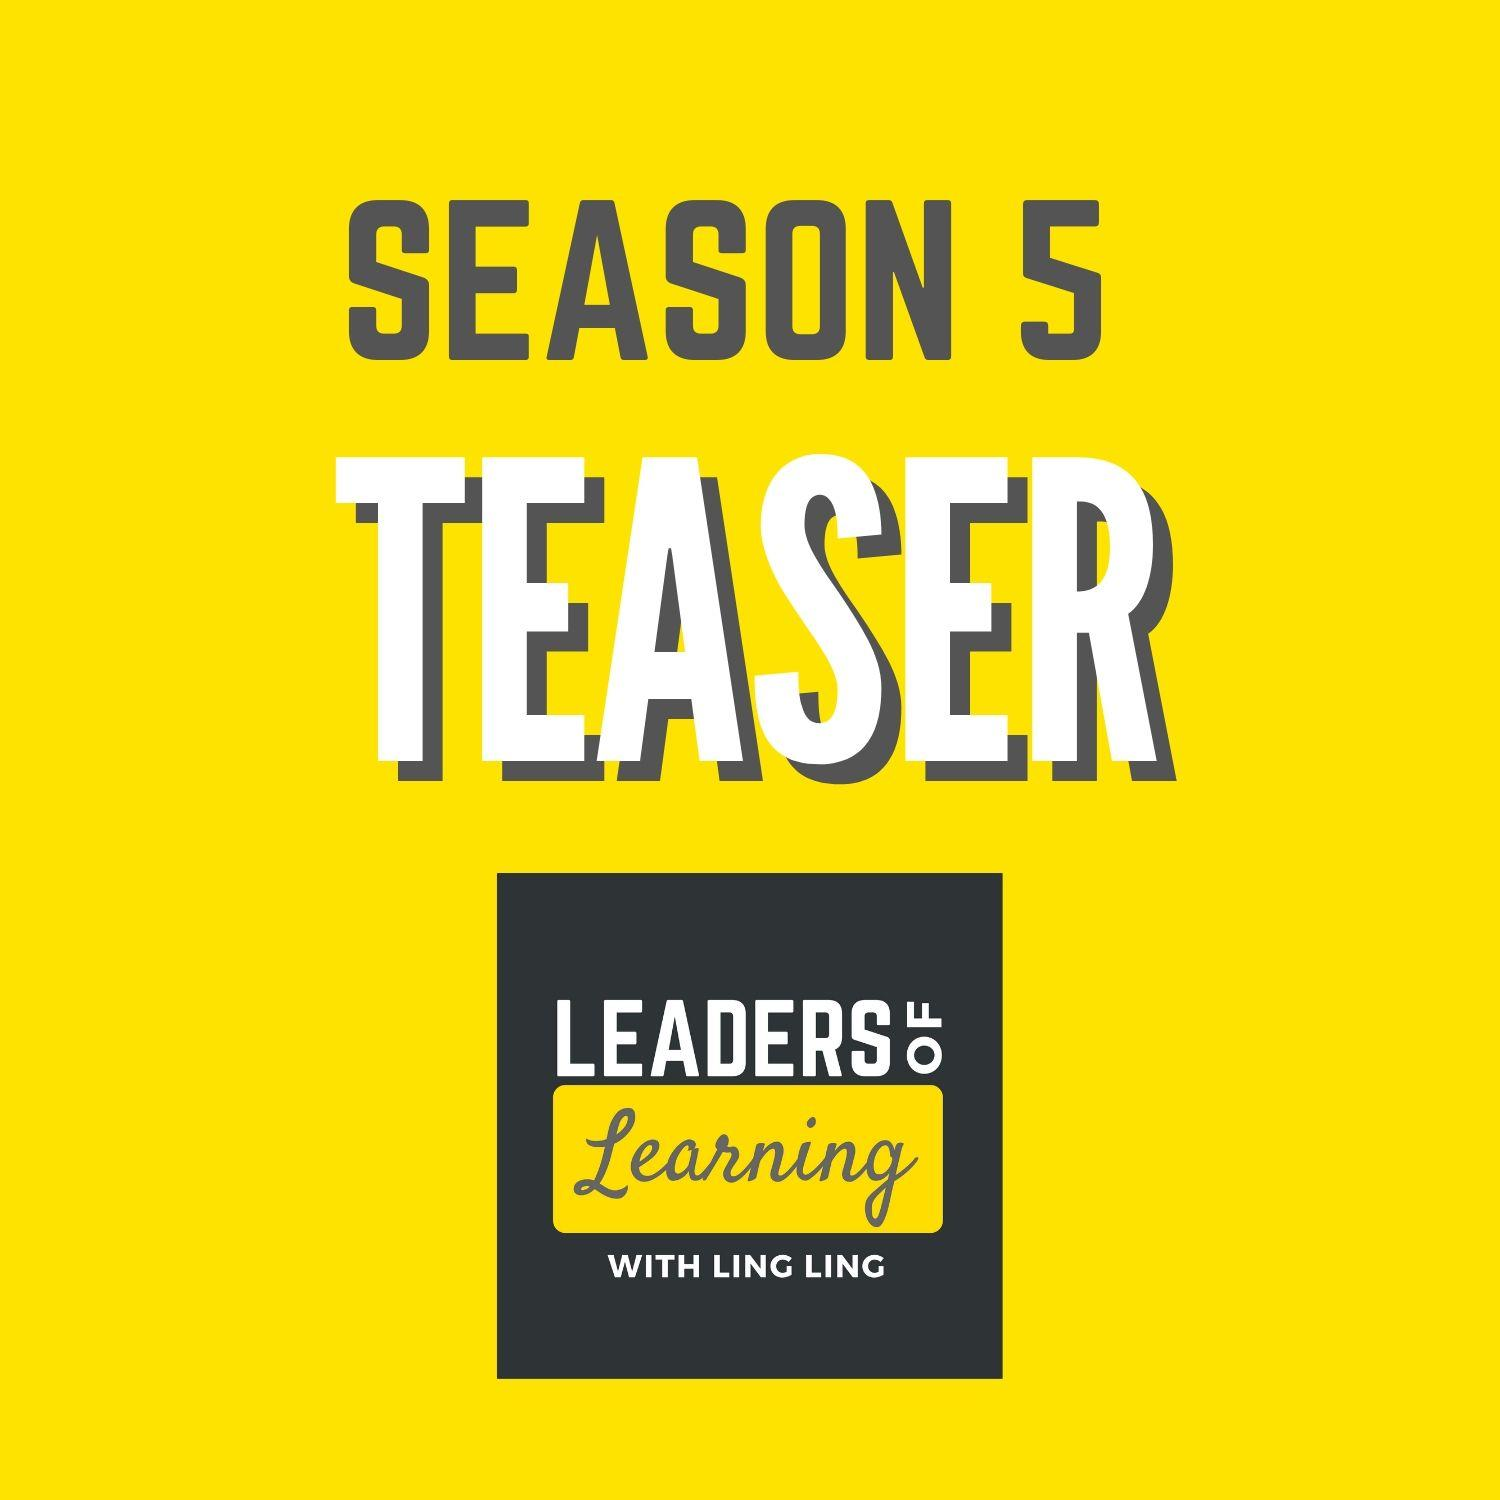 Leaders of Learning: Season 5 Teaser